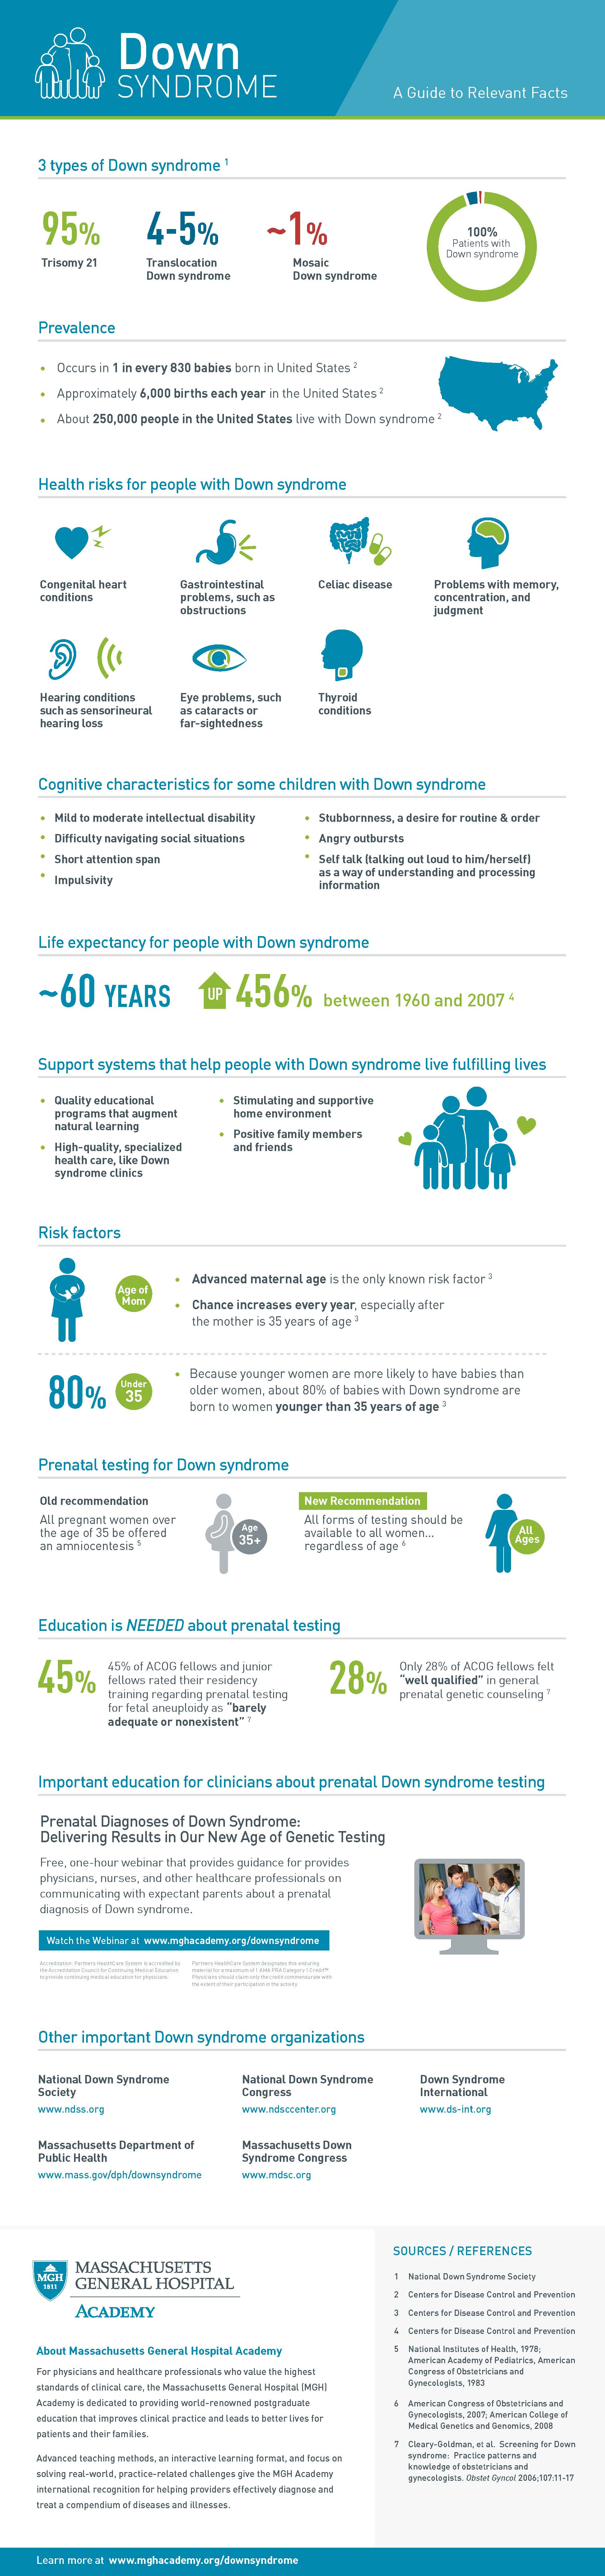 Down Syndrome Facts, Figures and Education